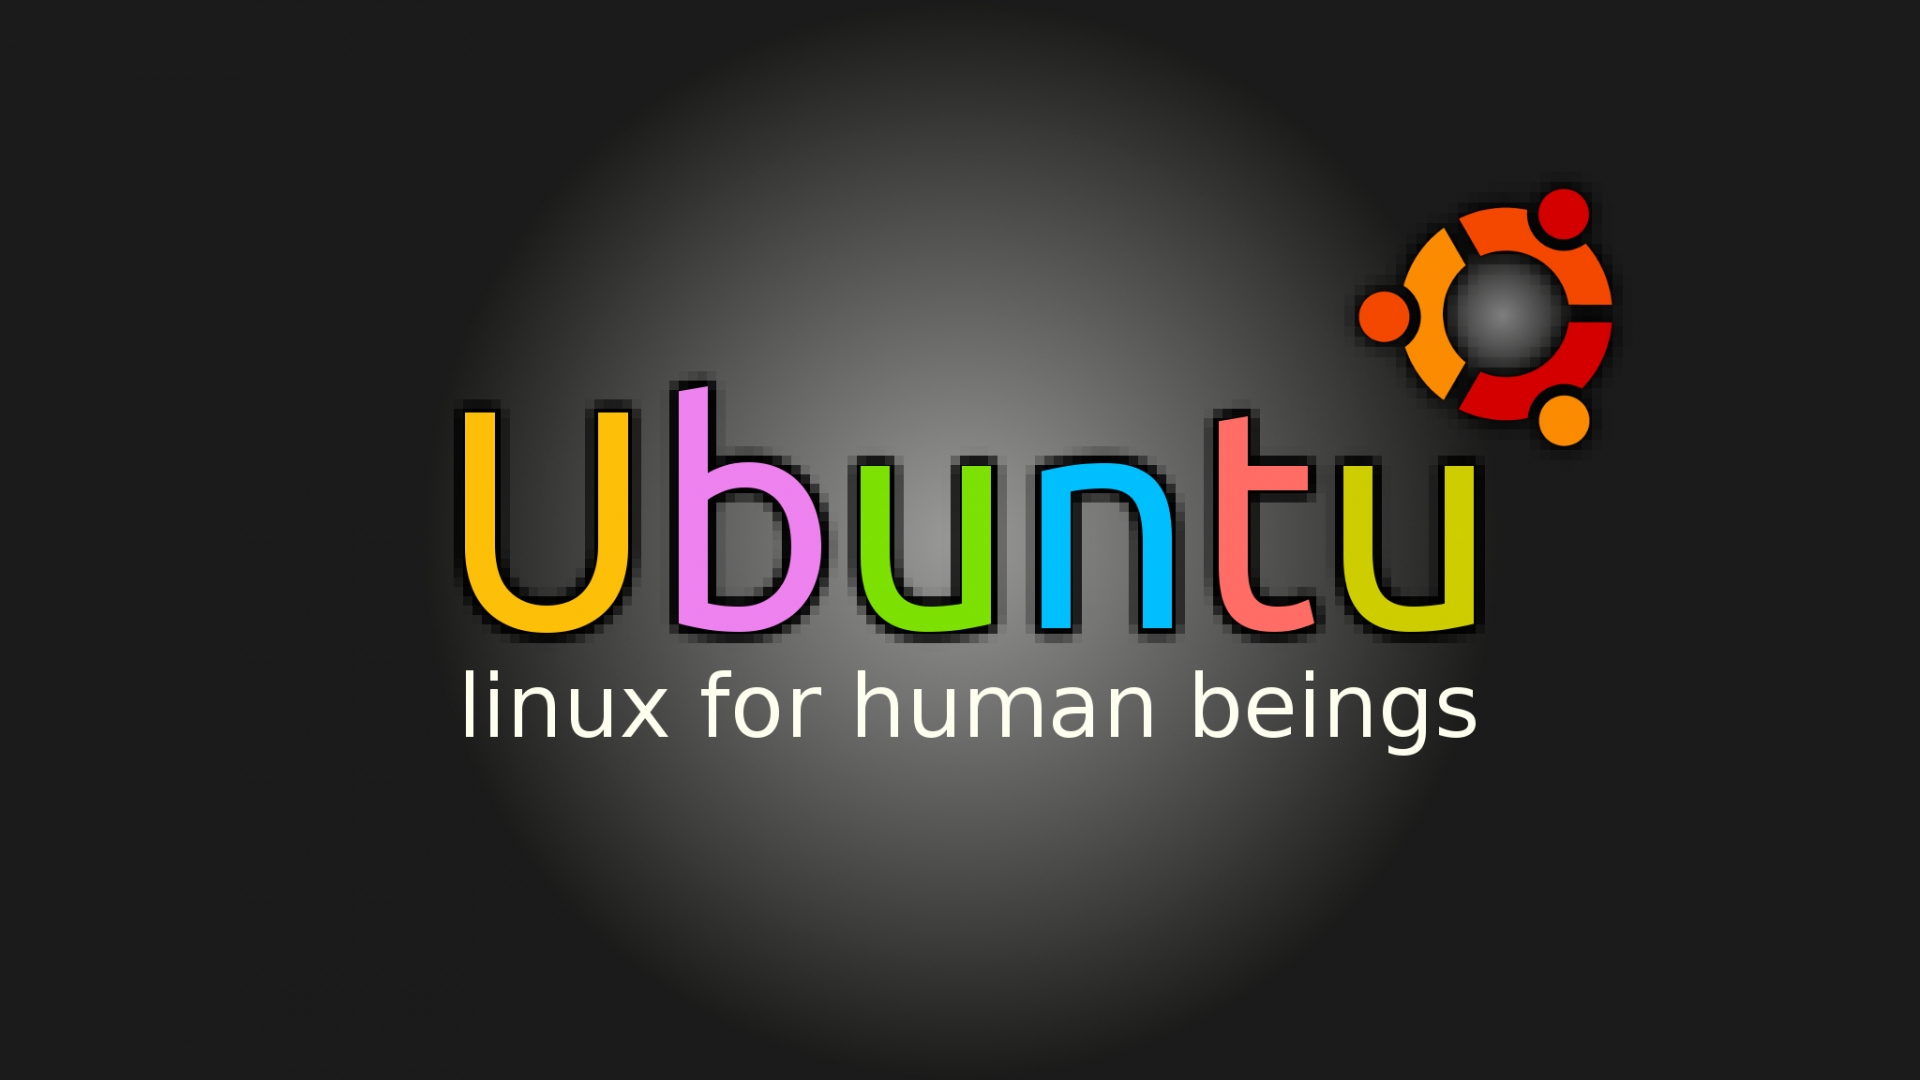 Ubuntu Wallpaper Hd 1920X1080   1472857 1920x1080